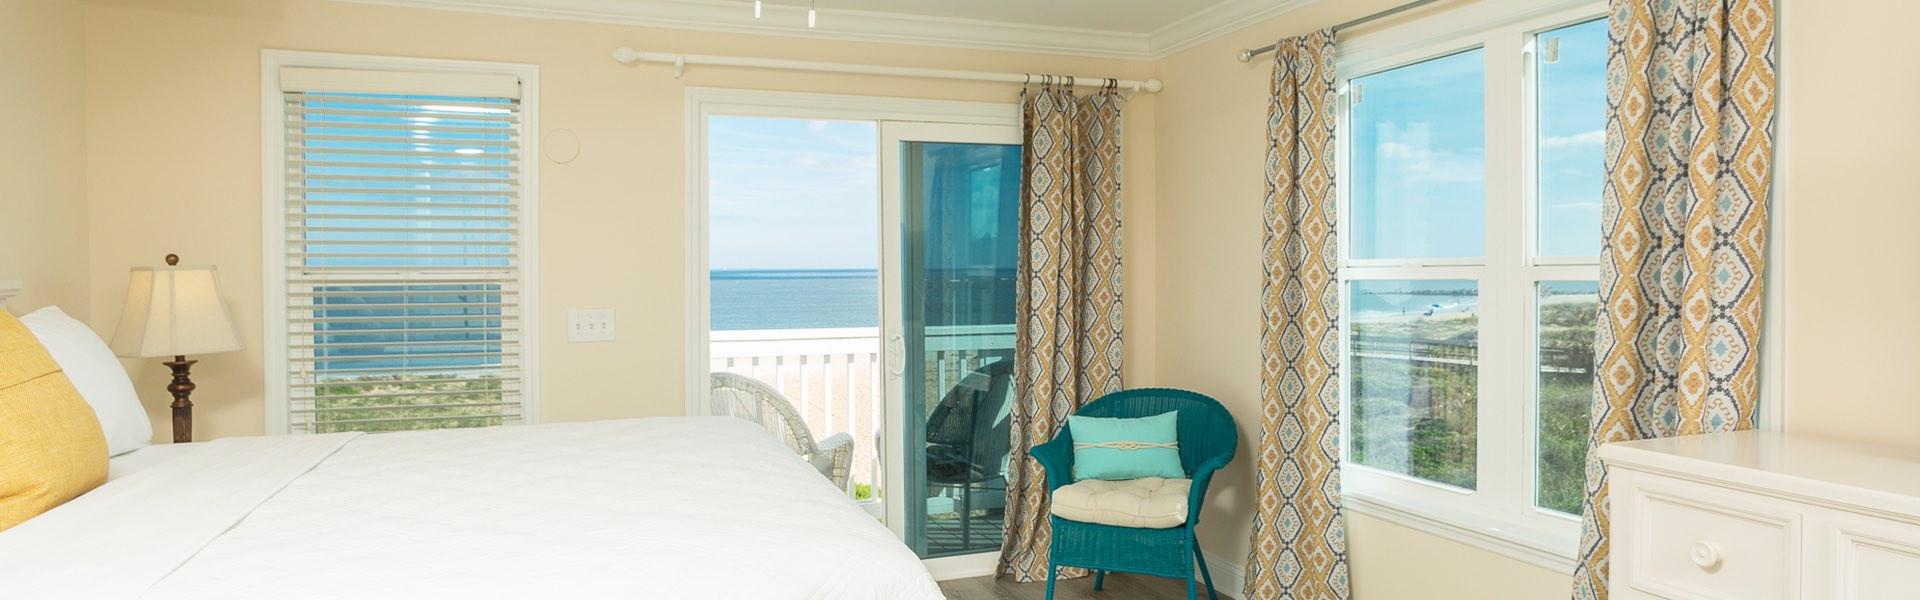 Room with king bed and wide view of ocean